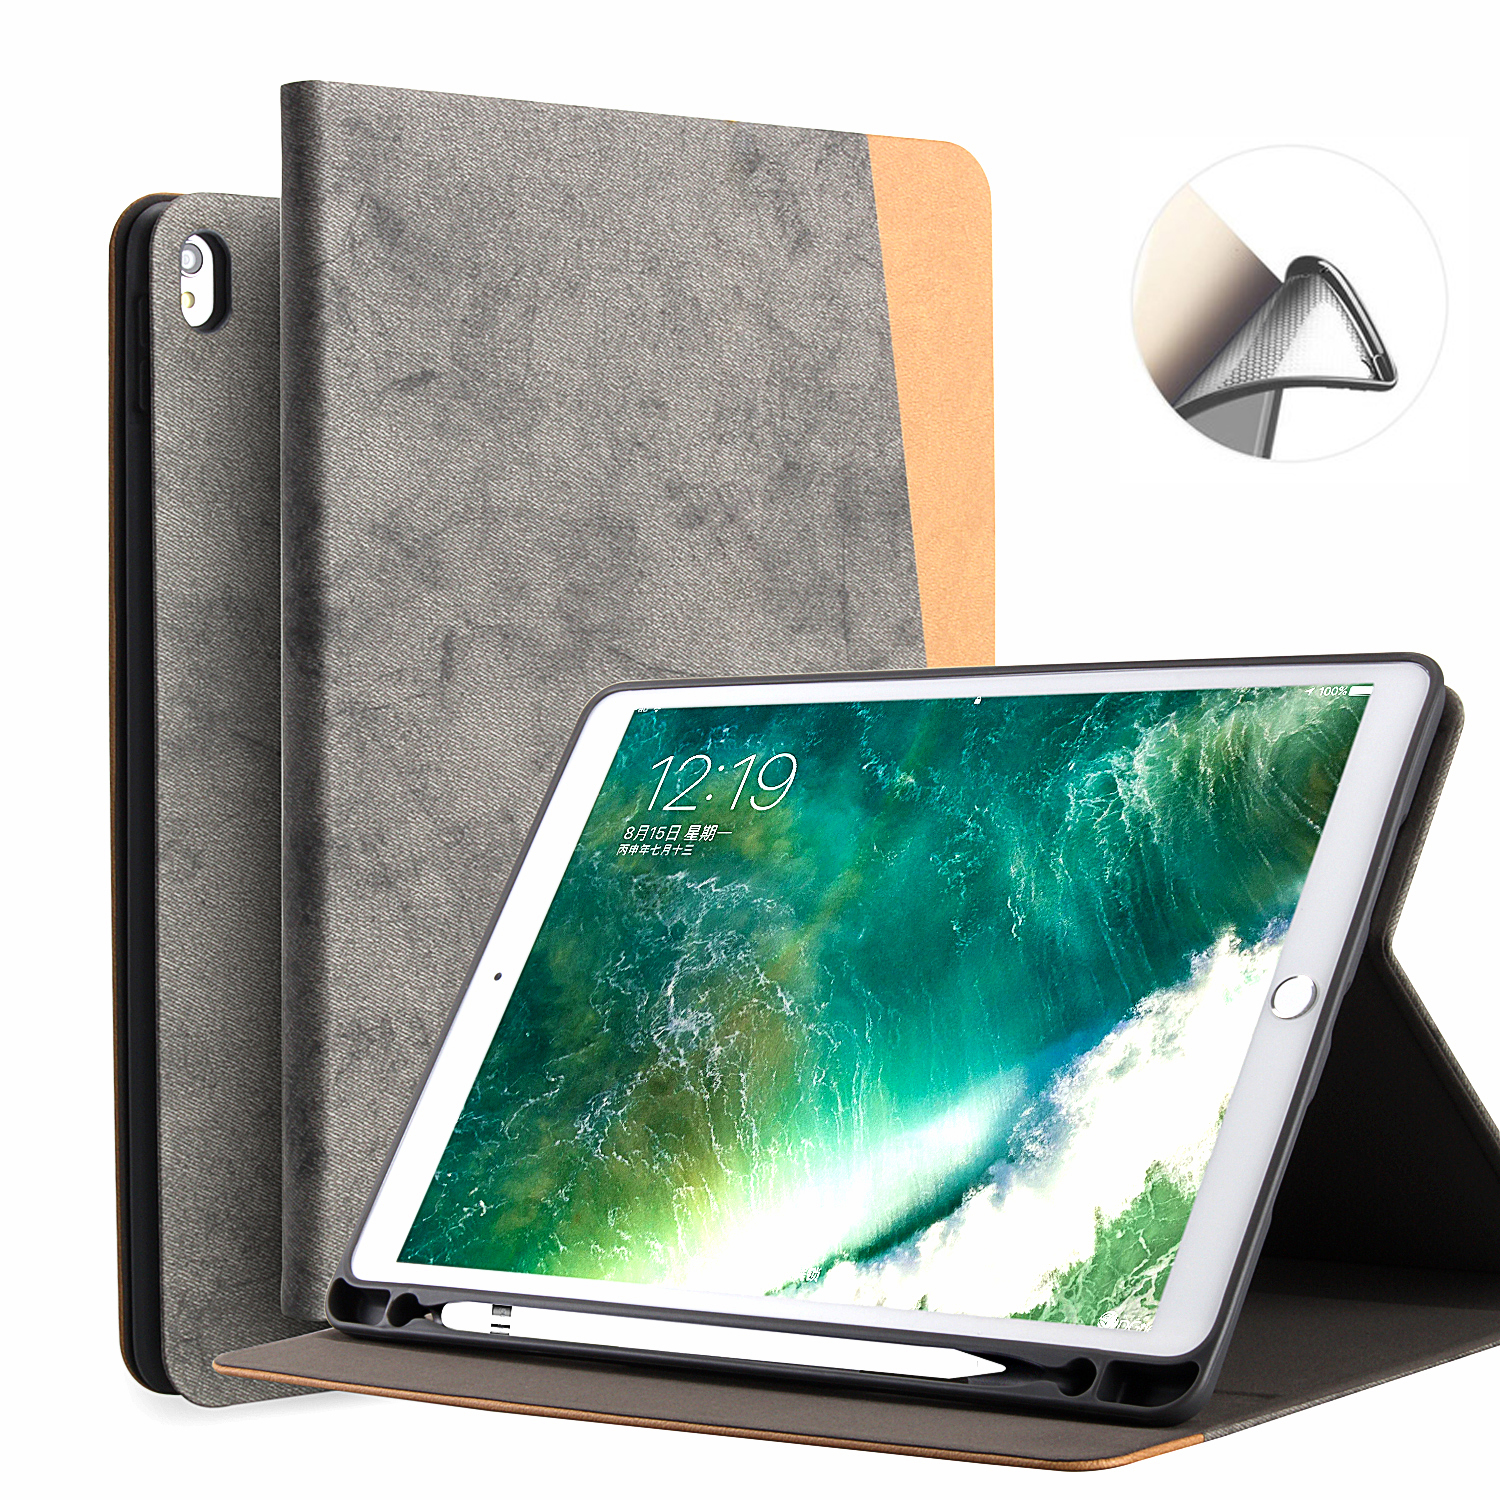 For iPad Pro 10.5 Case PU Leather Slim Smart Cover With Auto Sleep/Wake For Apple iPad Pro 10. 5 inch 2017 New case for ipad pro 10 5 ultra retro pu leather tablet sleeve pouch bag cover for ipad 10 5 inch a1701 a1709 funda tablet case